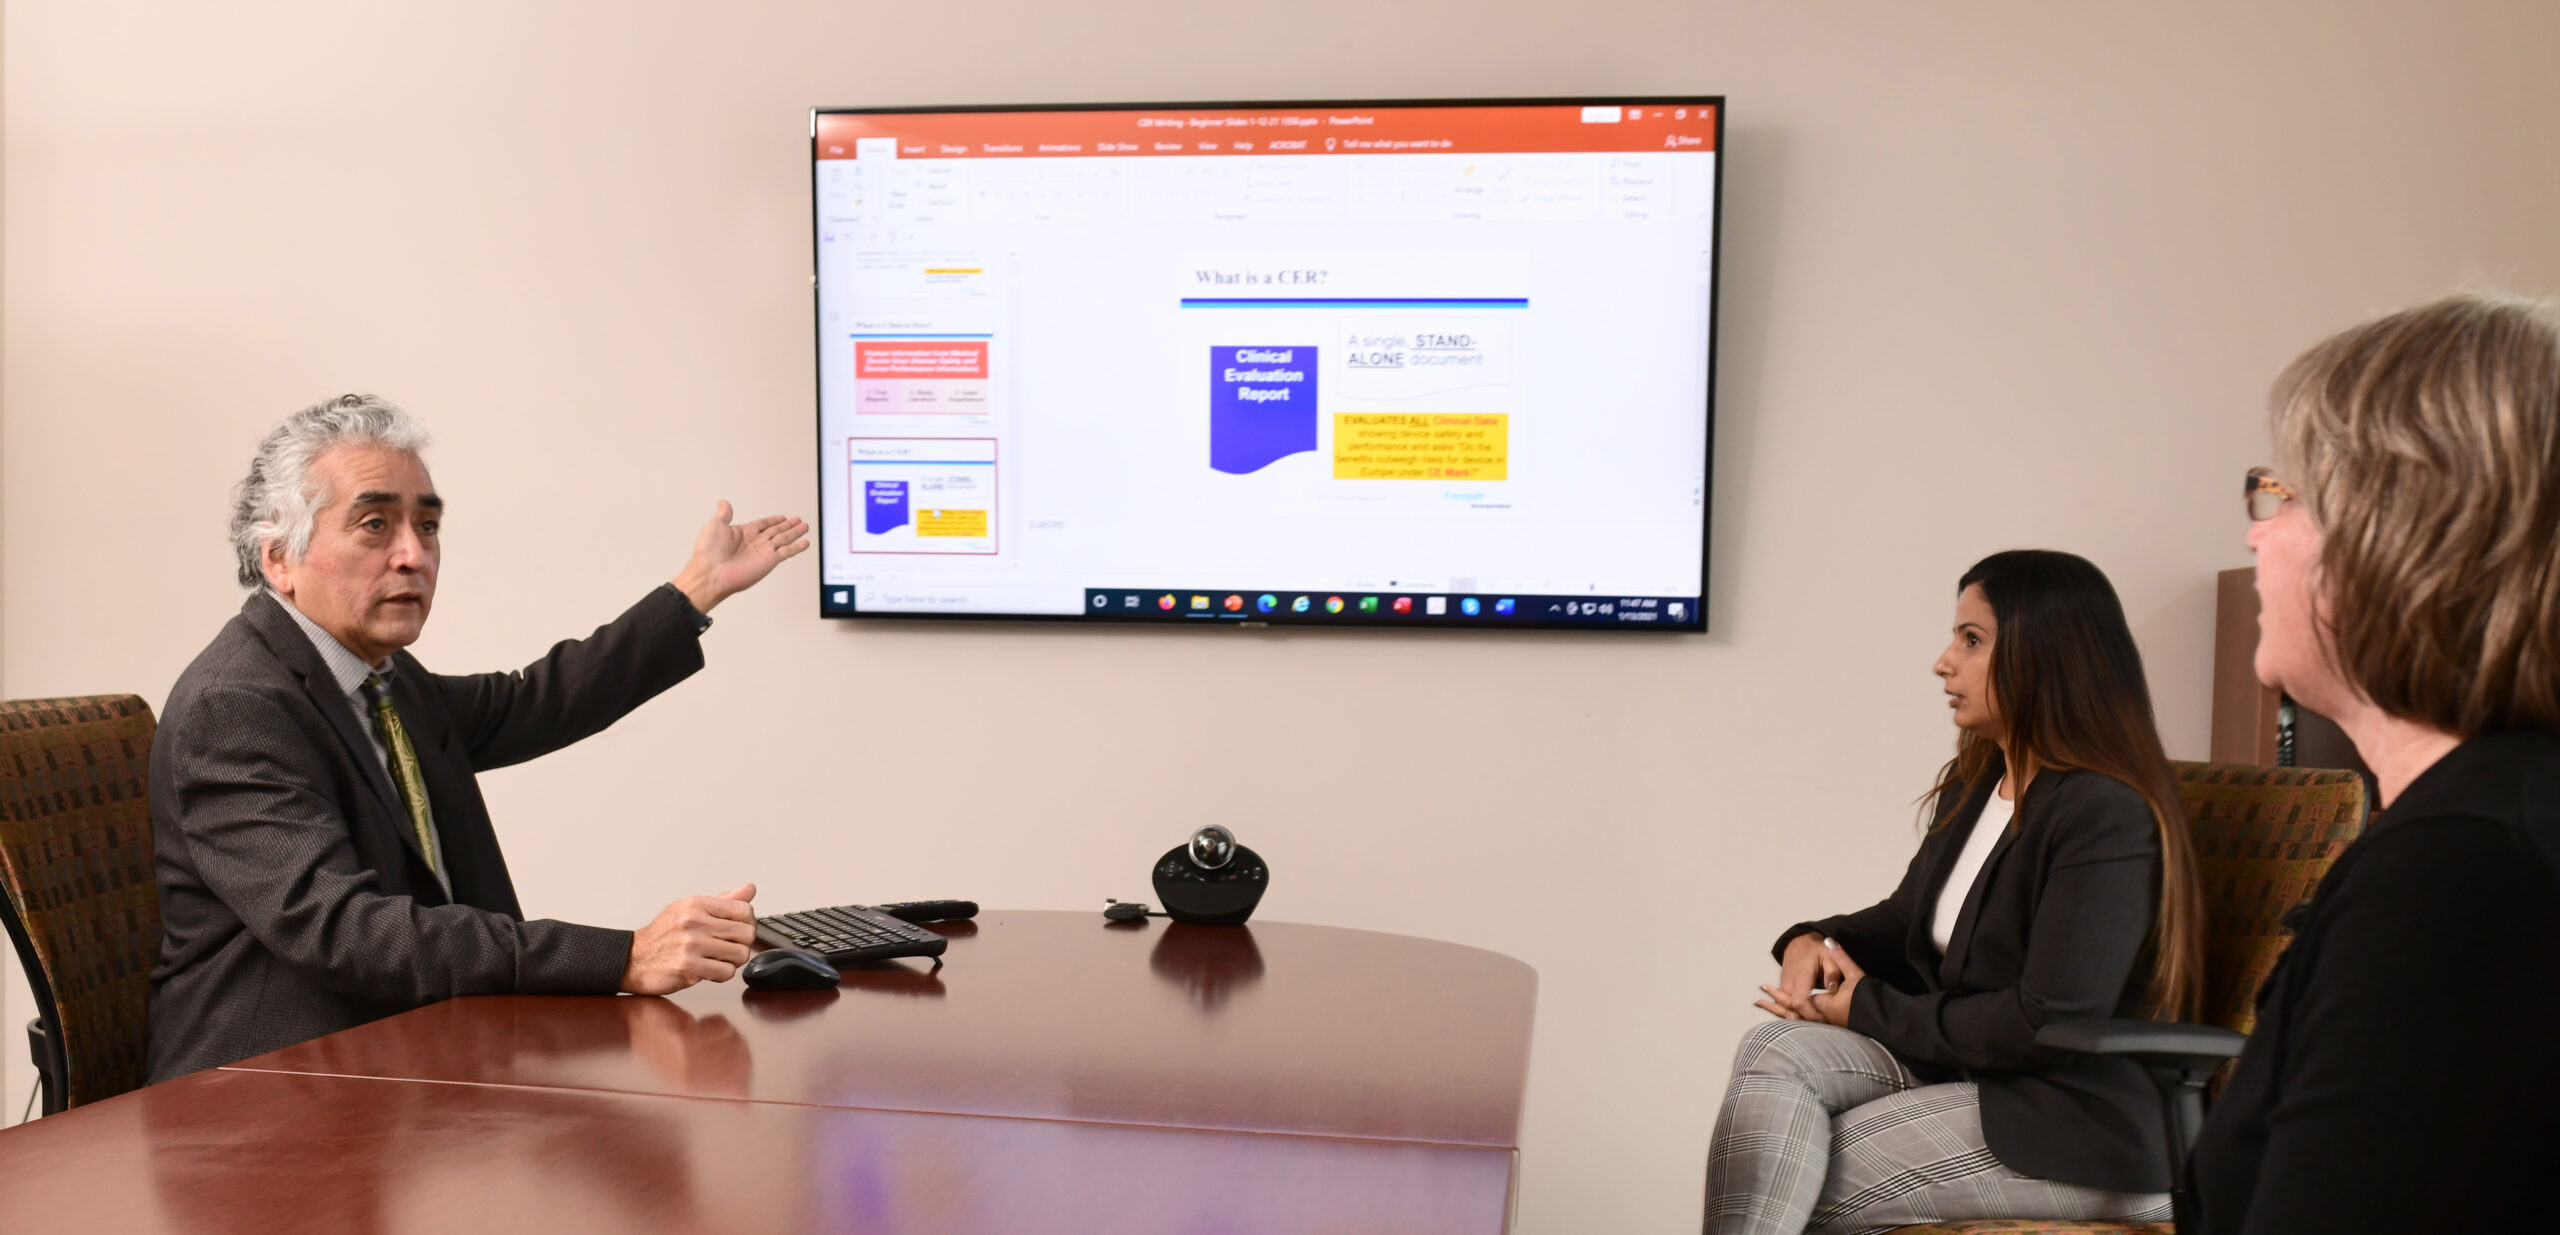 Conference room, person gesturing to slide on a screen, 2 people watch